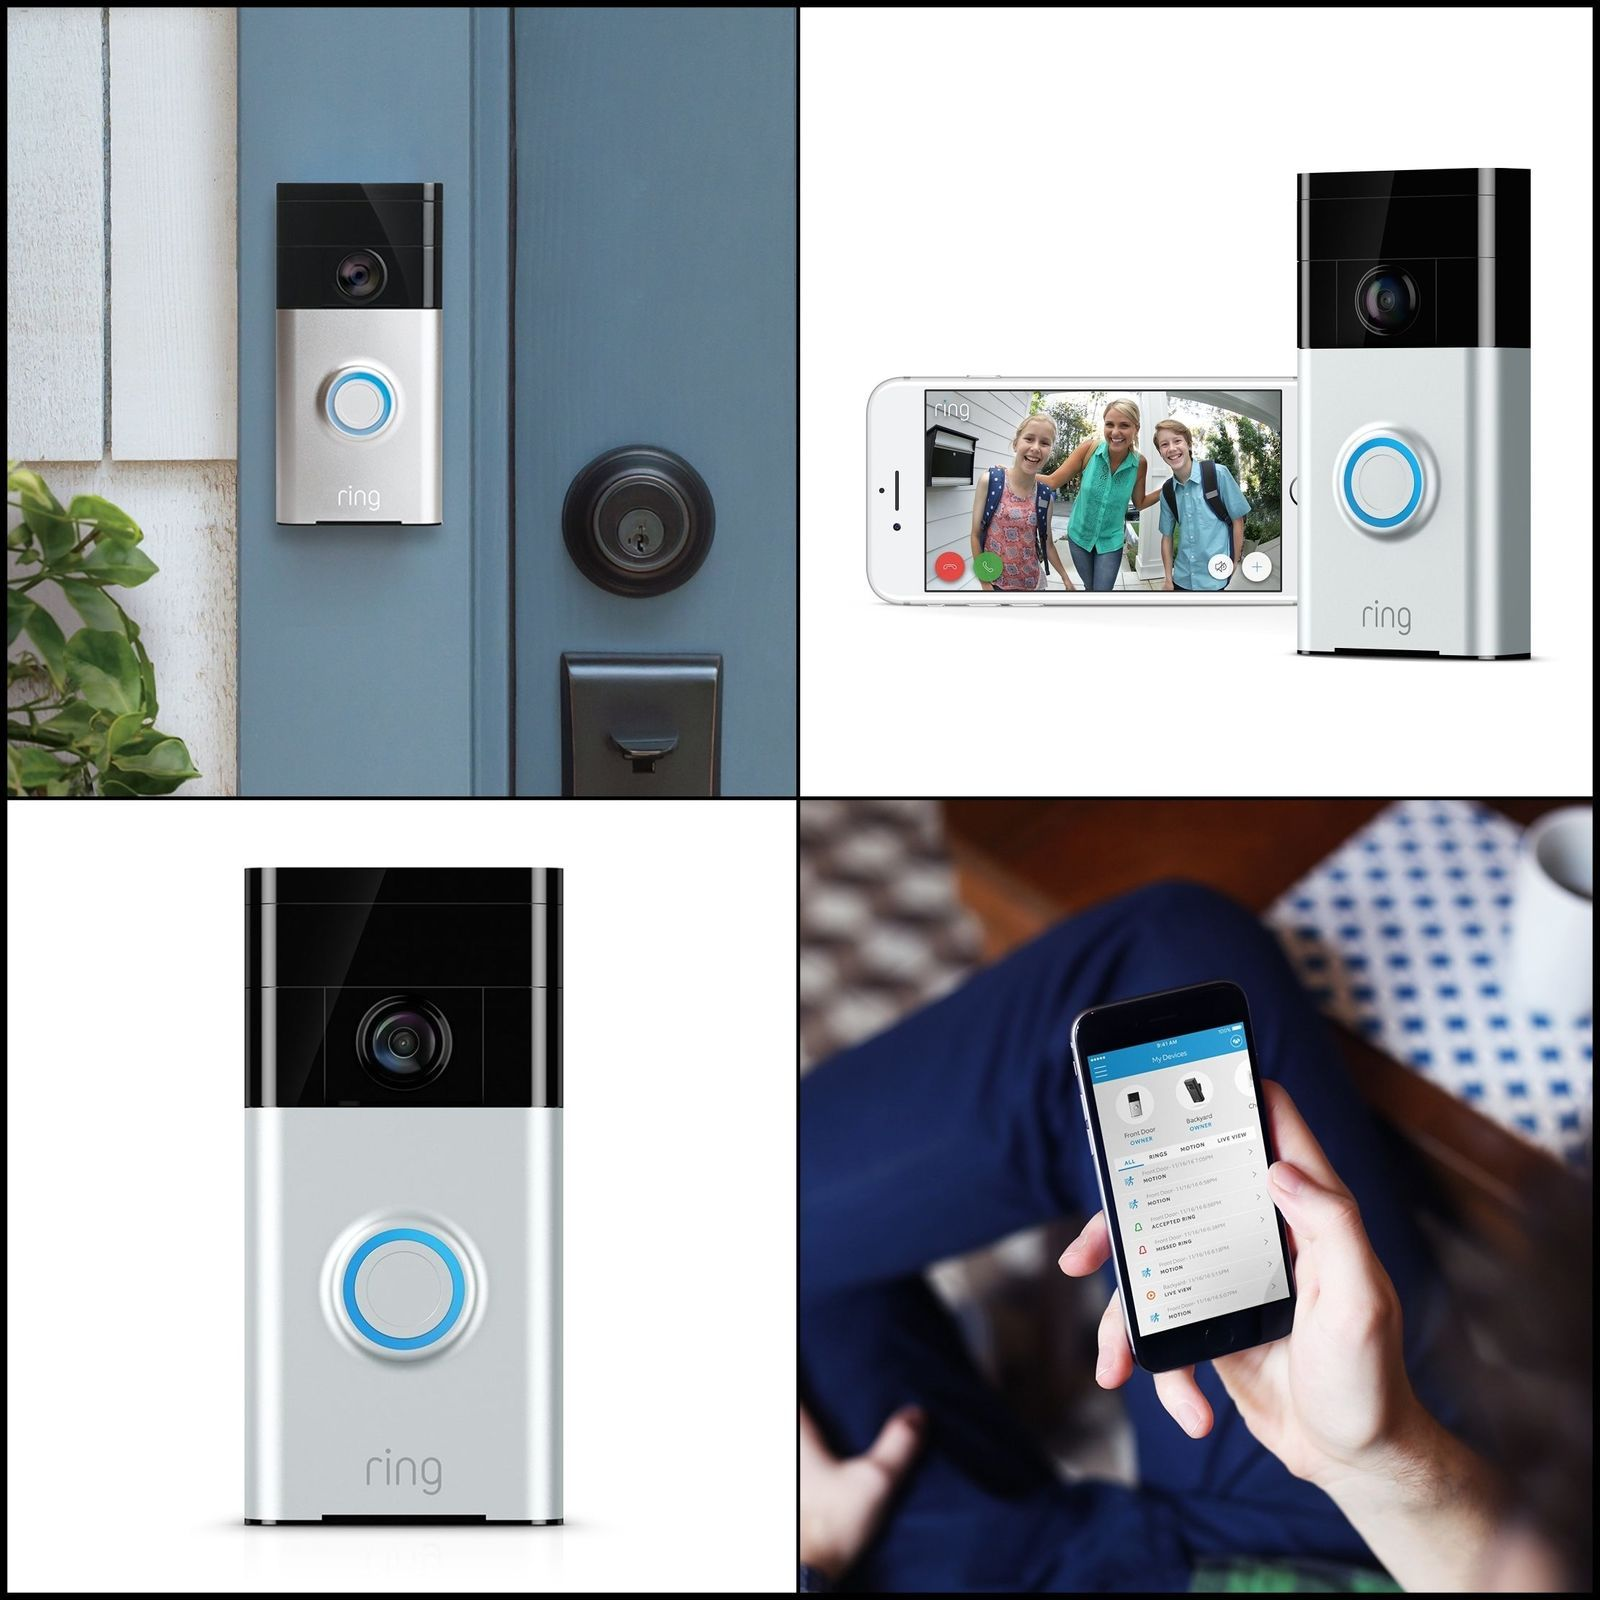 Ring Wi-Fi Enabled Video Doorbell in Satin Nickel NEW SEALED! Works with Alexa